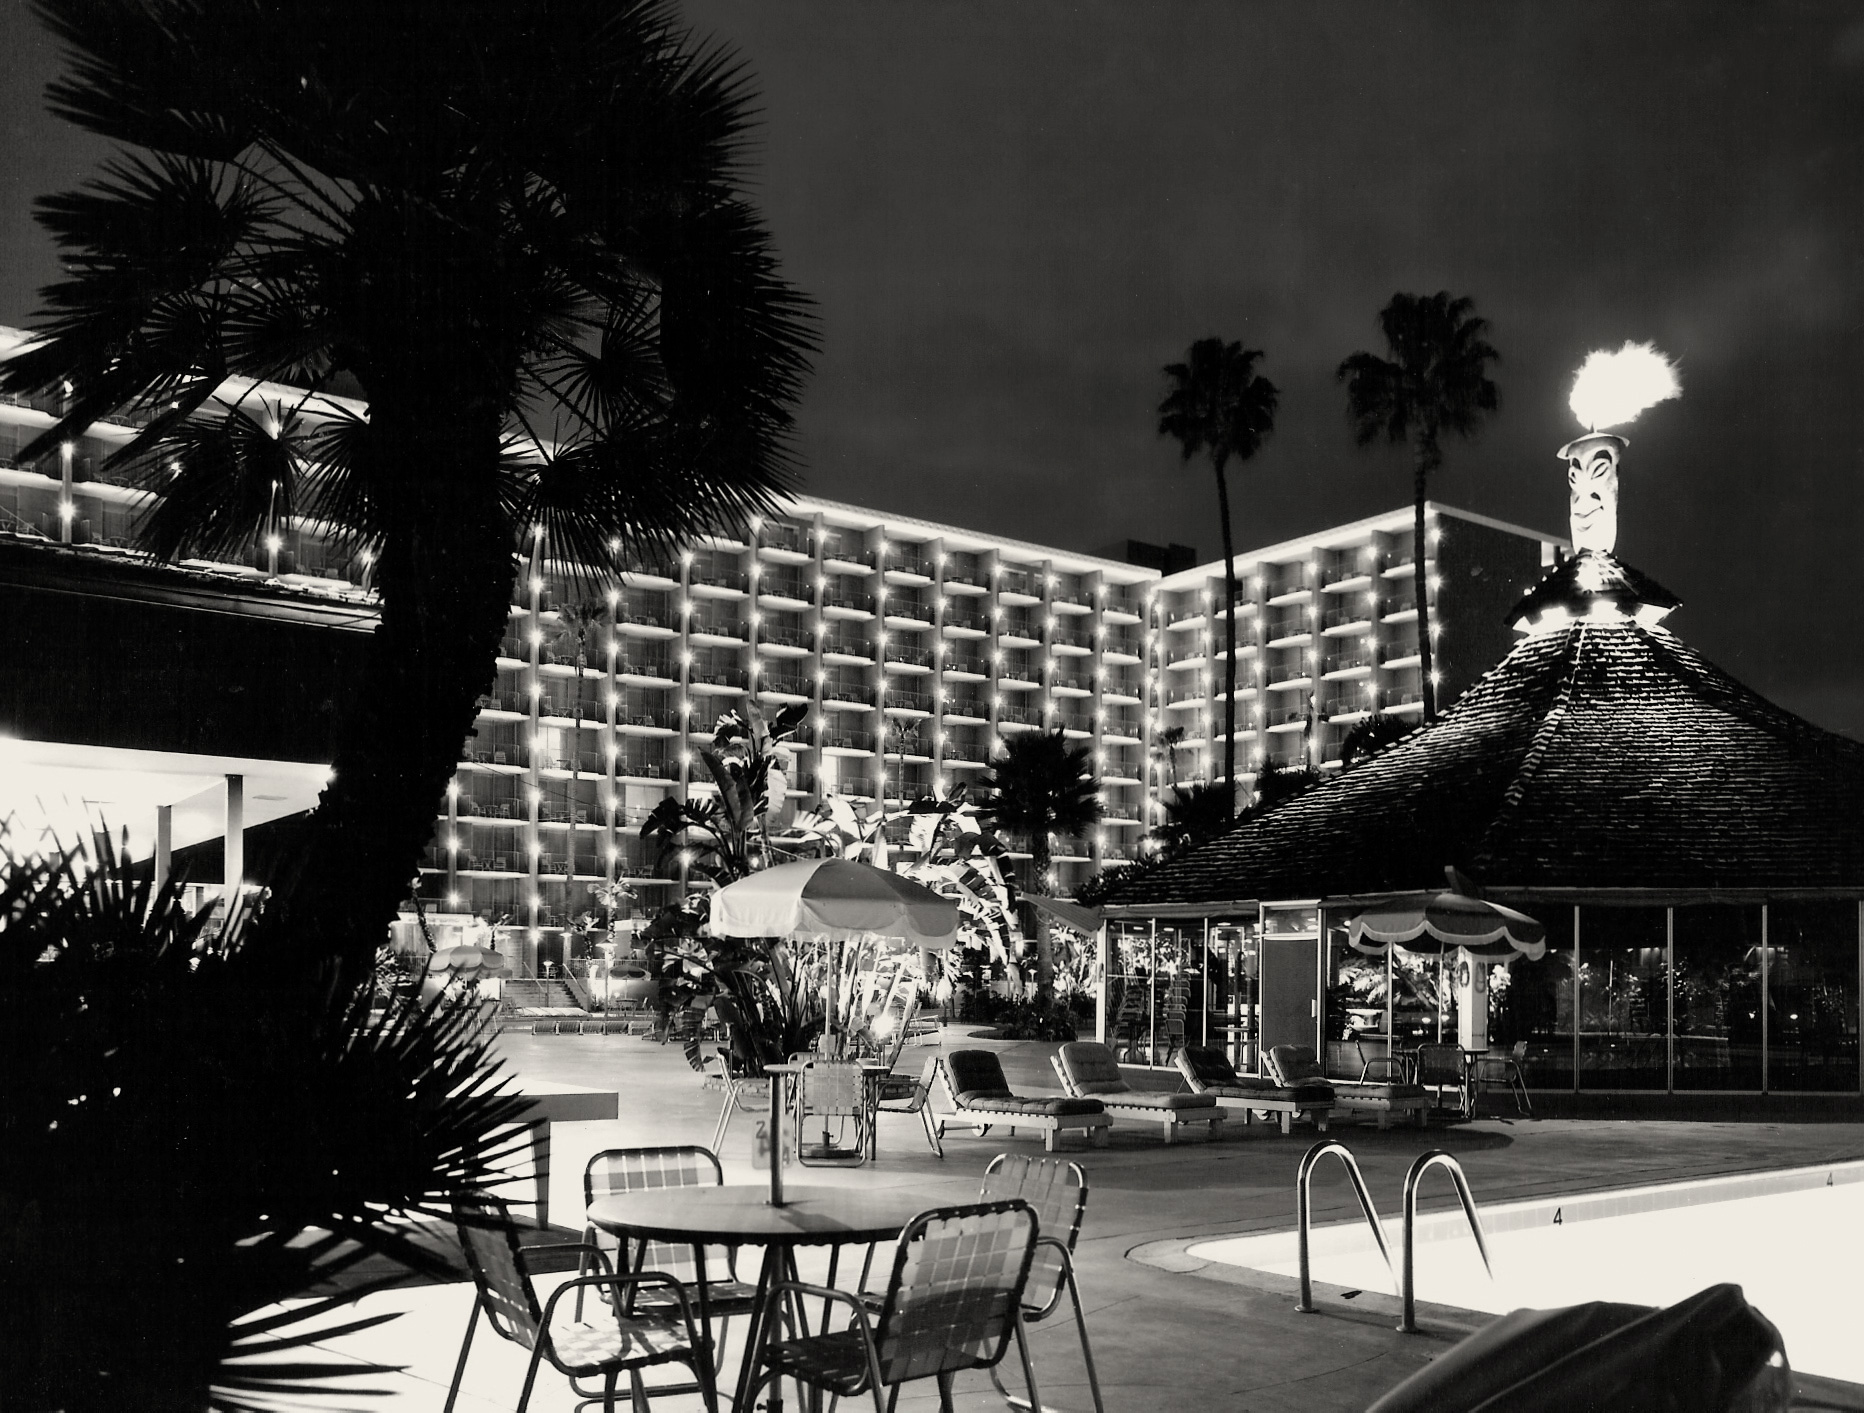 Tiki Hut at night, Town and Country Hotel, 1968